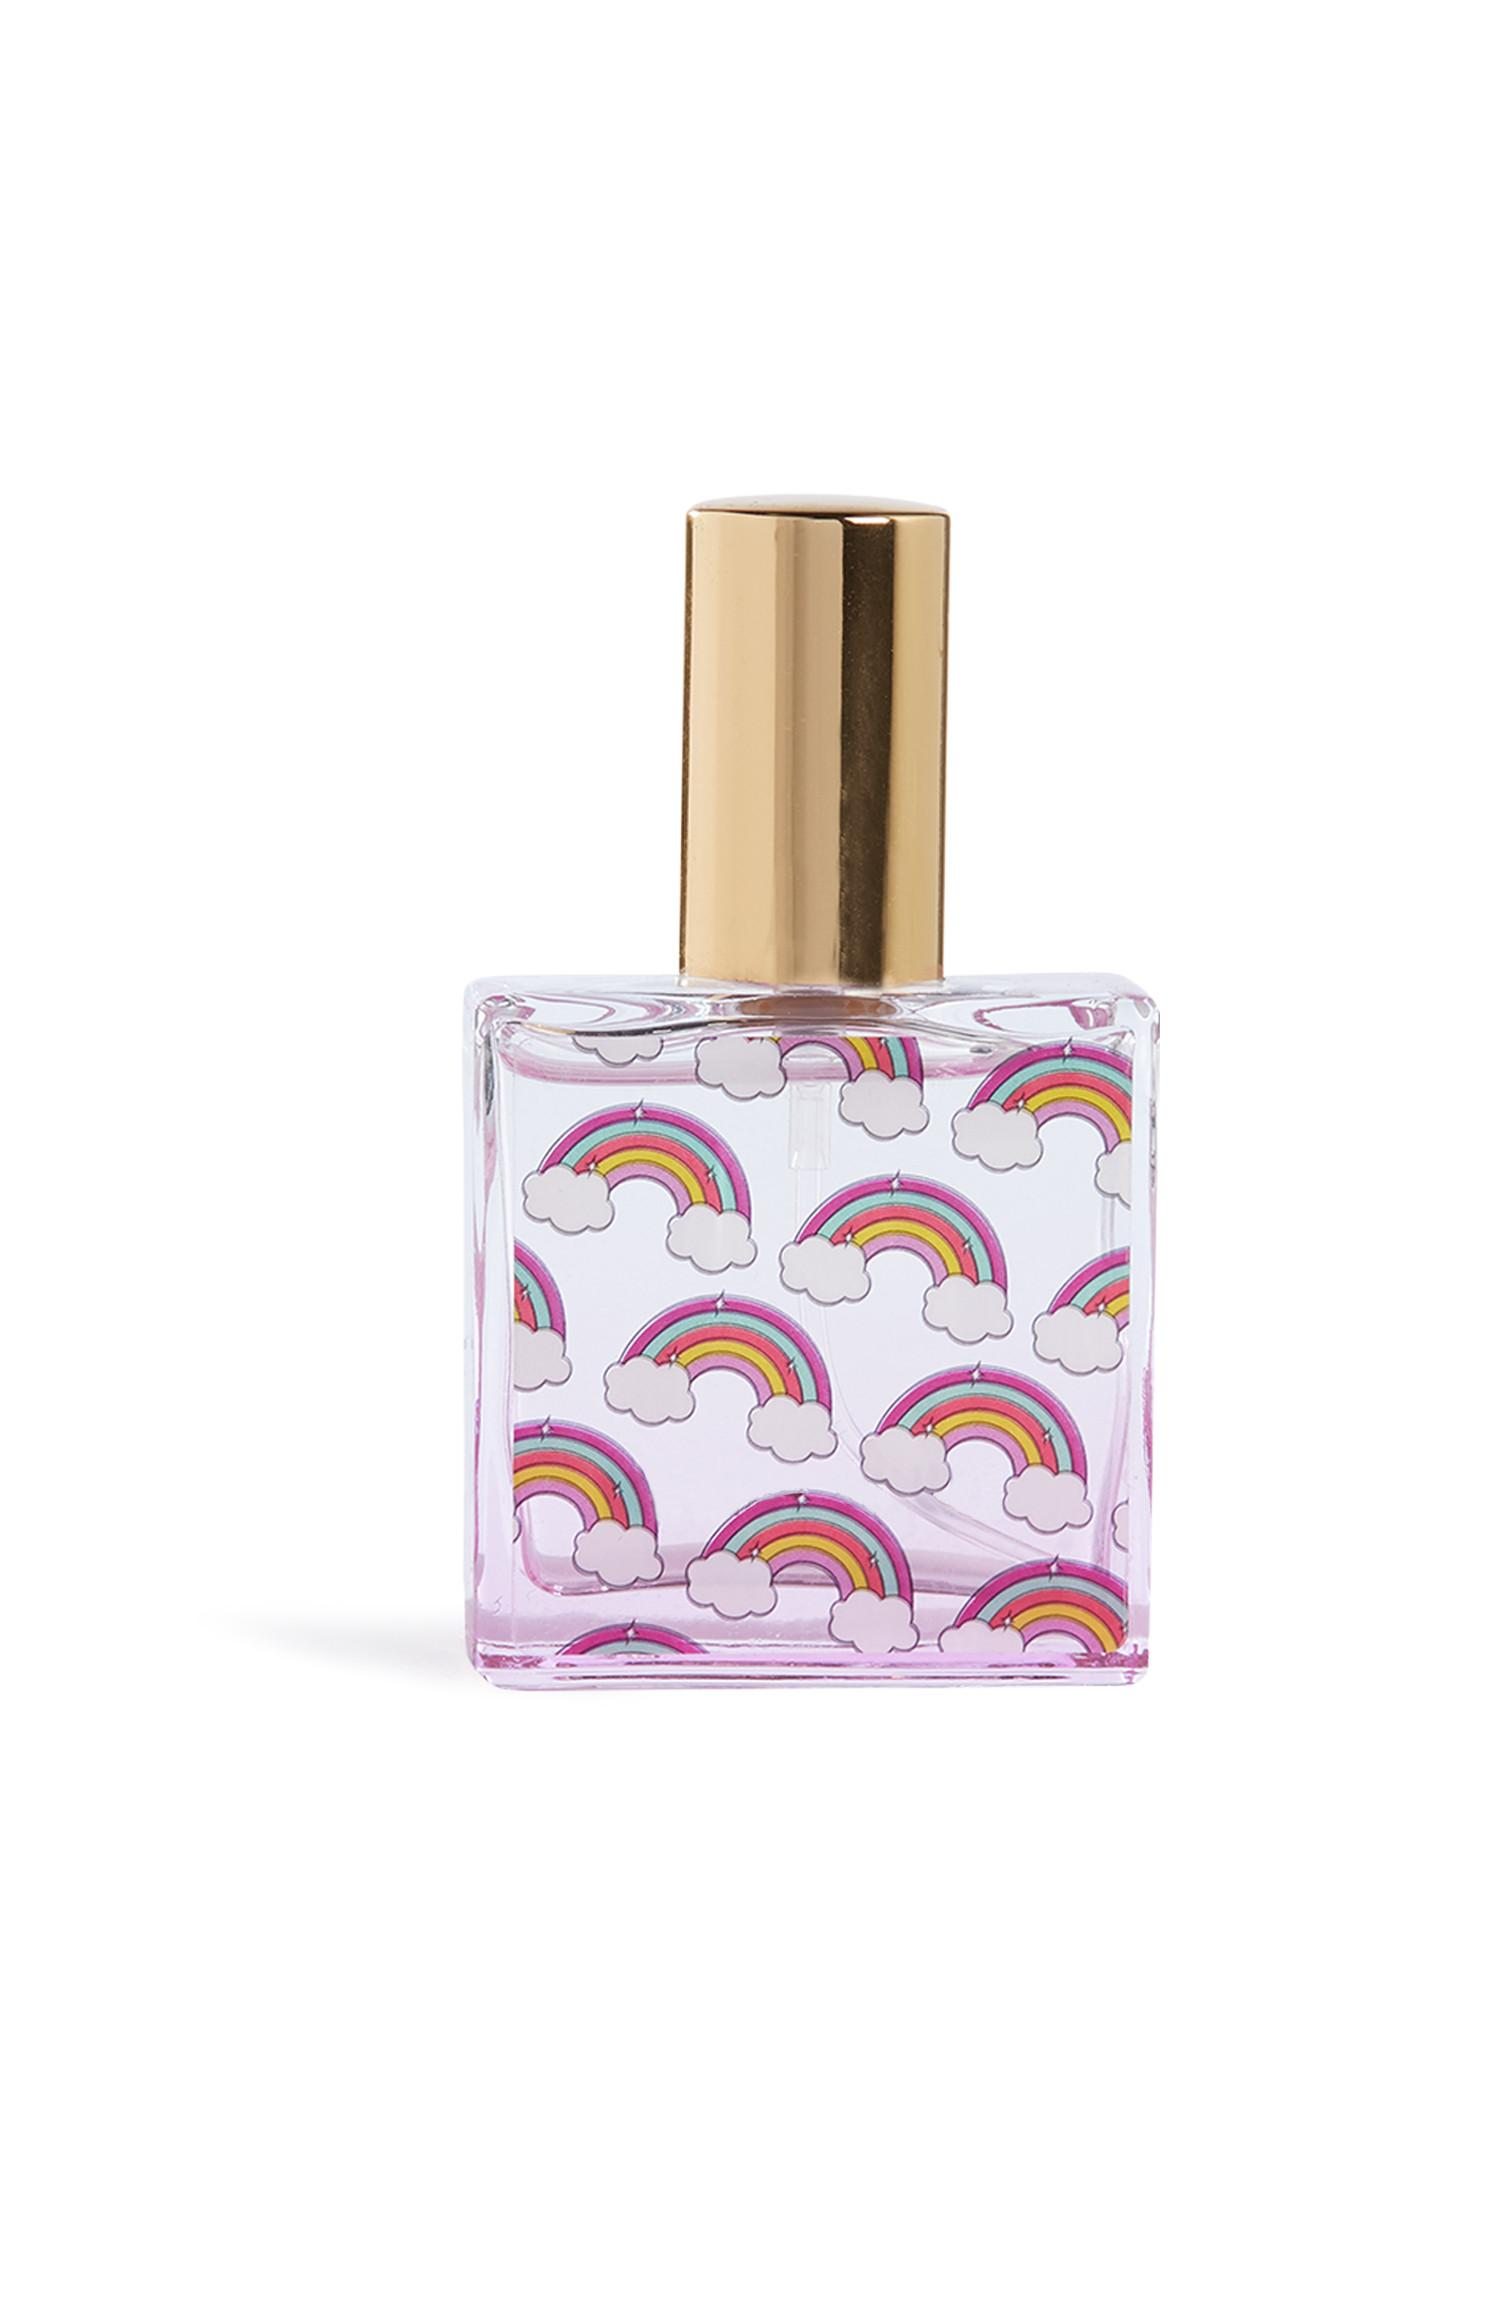 Rainbow Fragrance